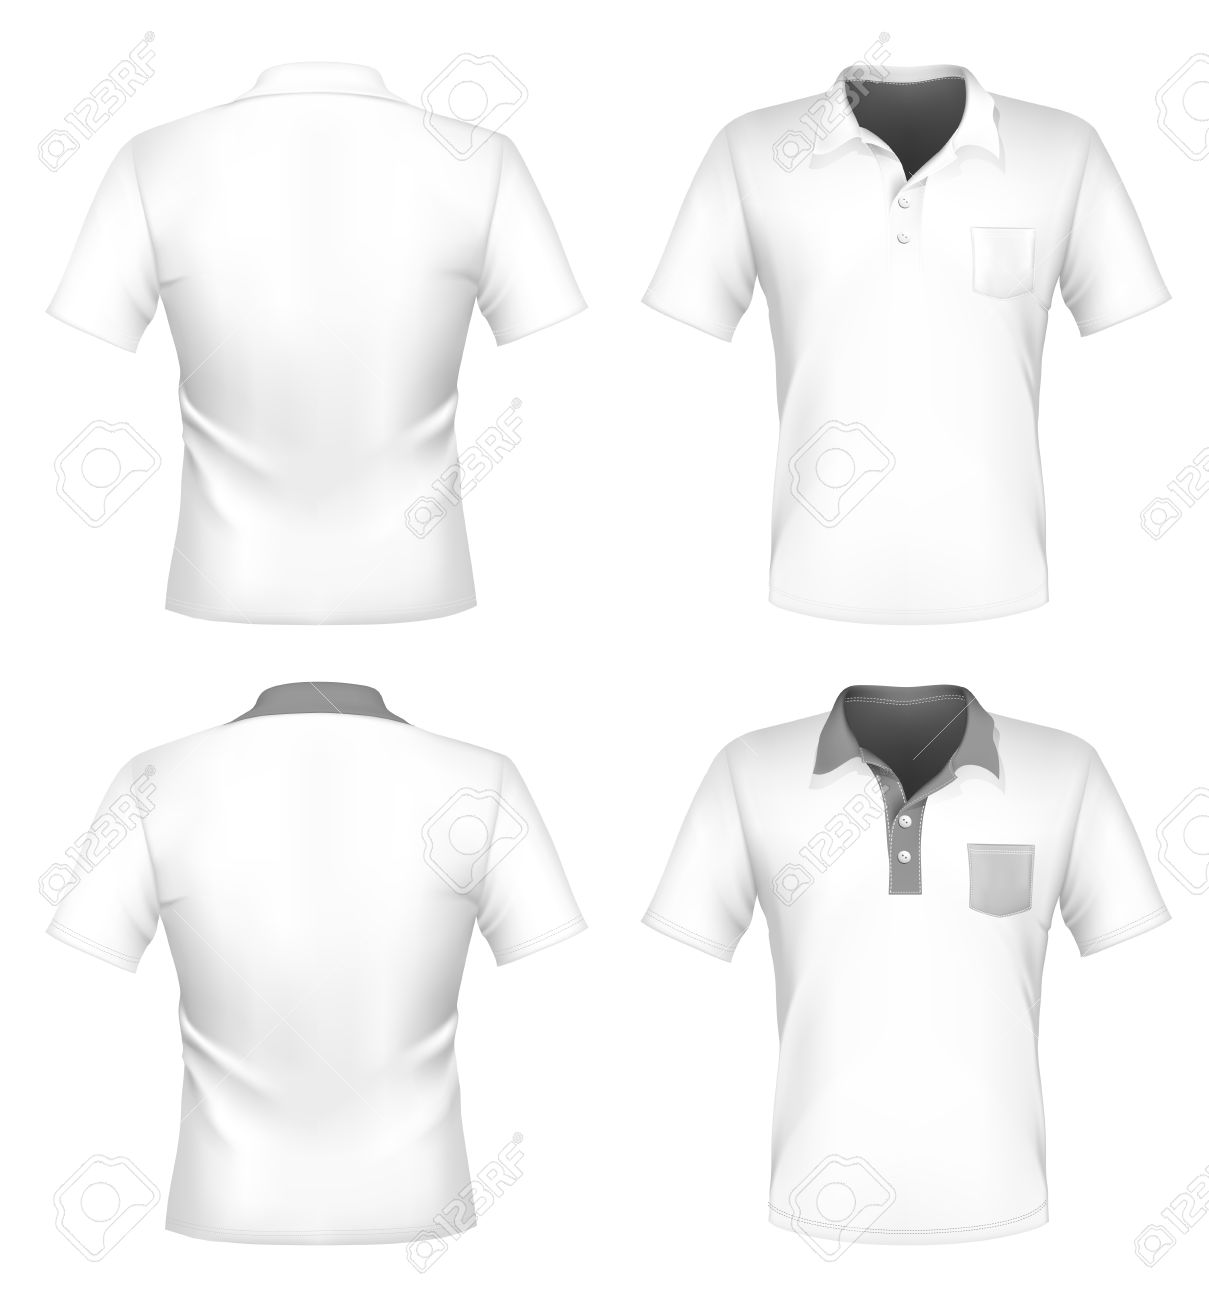 Design t shirts template eliolera pocket t shirt template t shirt pocket stock images royalty free pronofoot35fo Choice Image